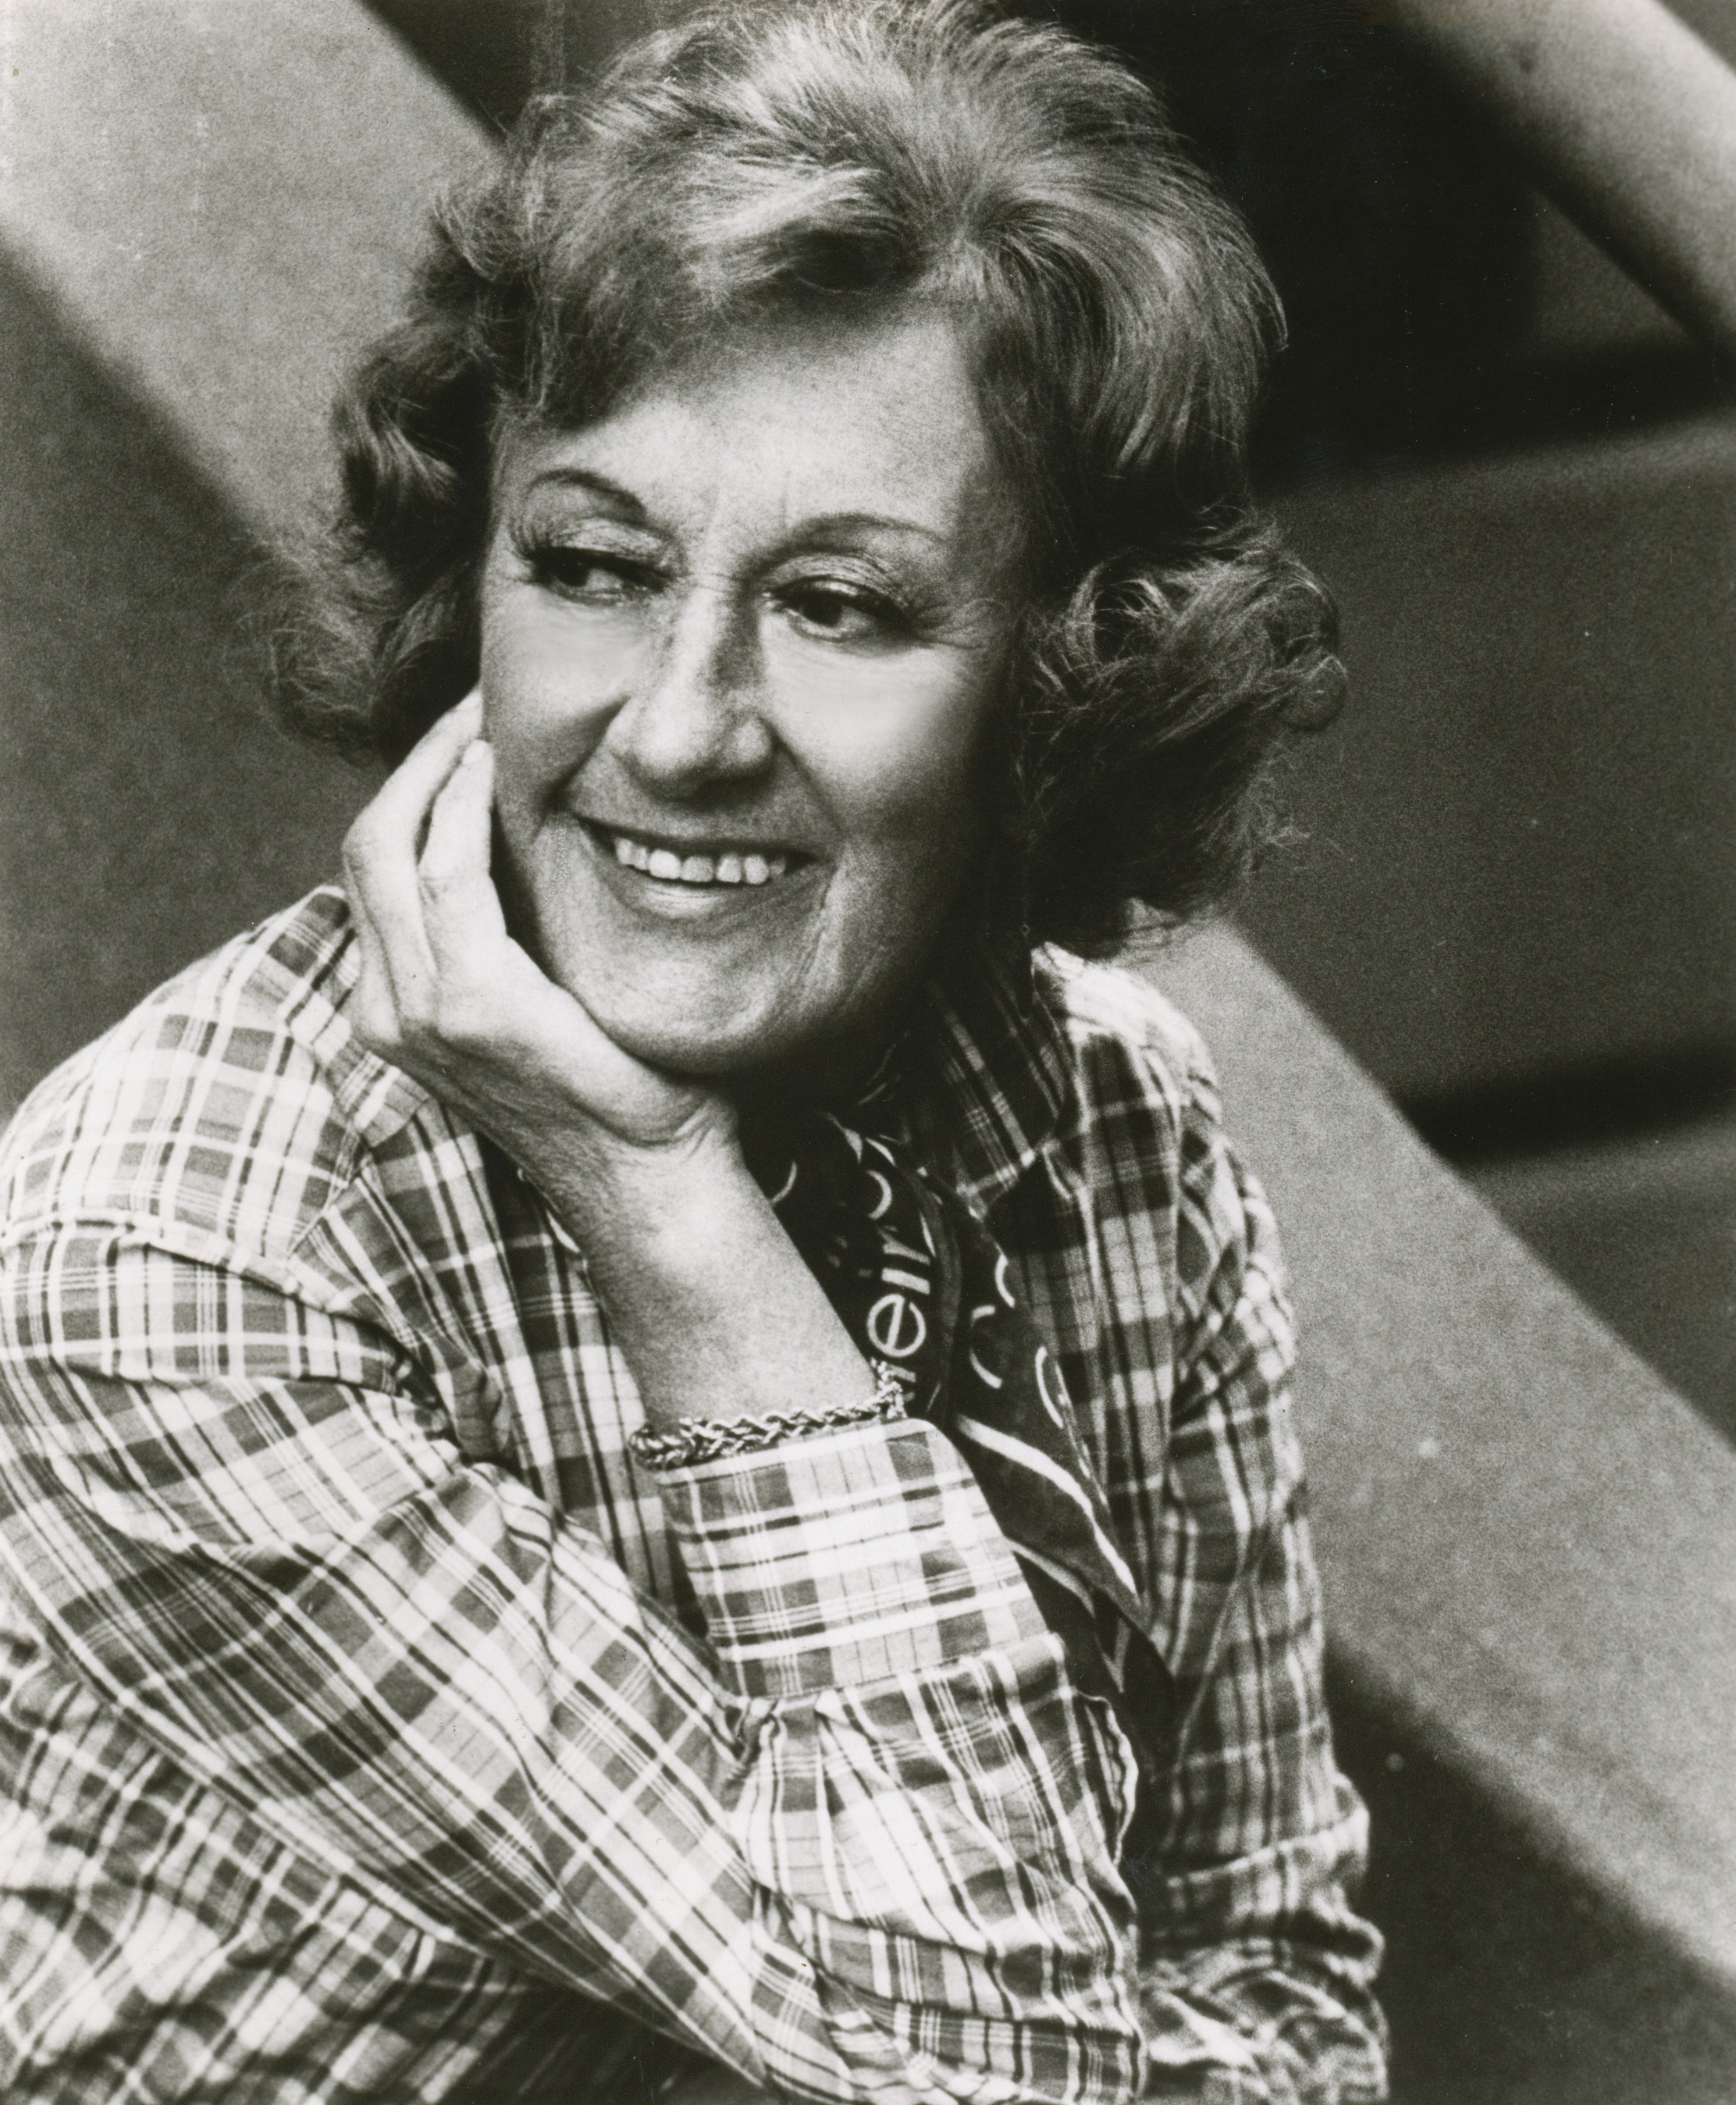 For more than 40 years, Marian McPartland welcomed hundreds of musicians to her Piano Jazz program.